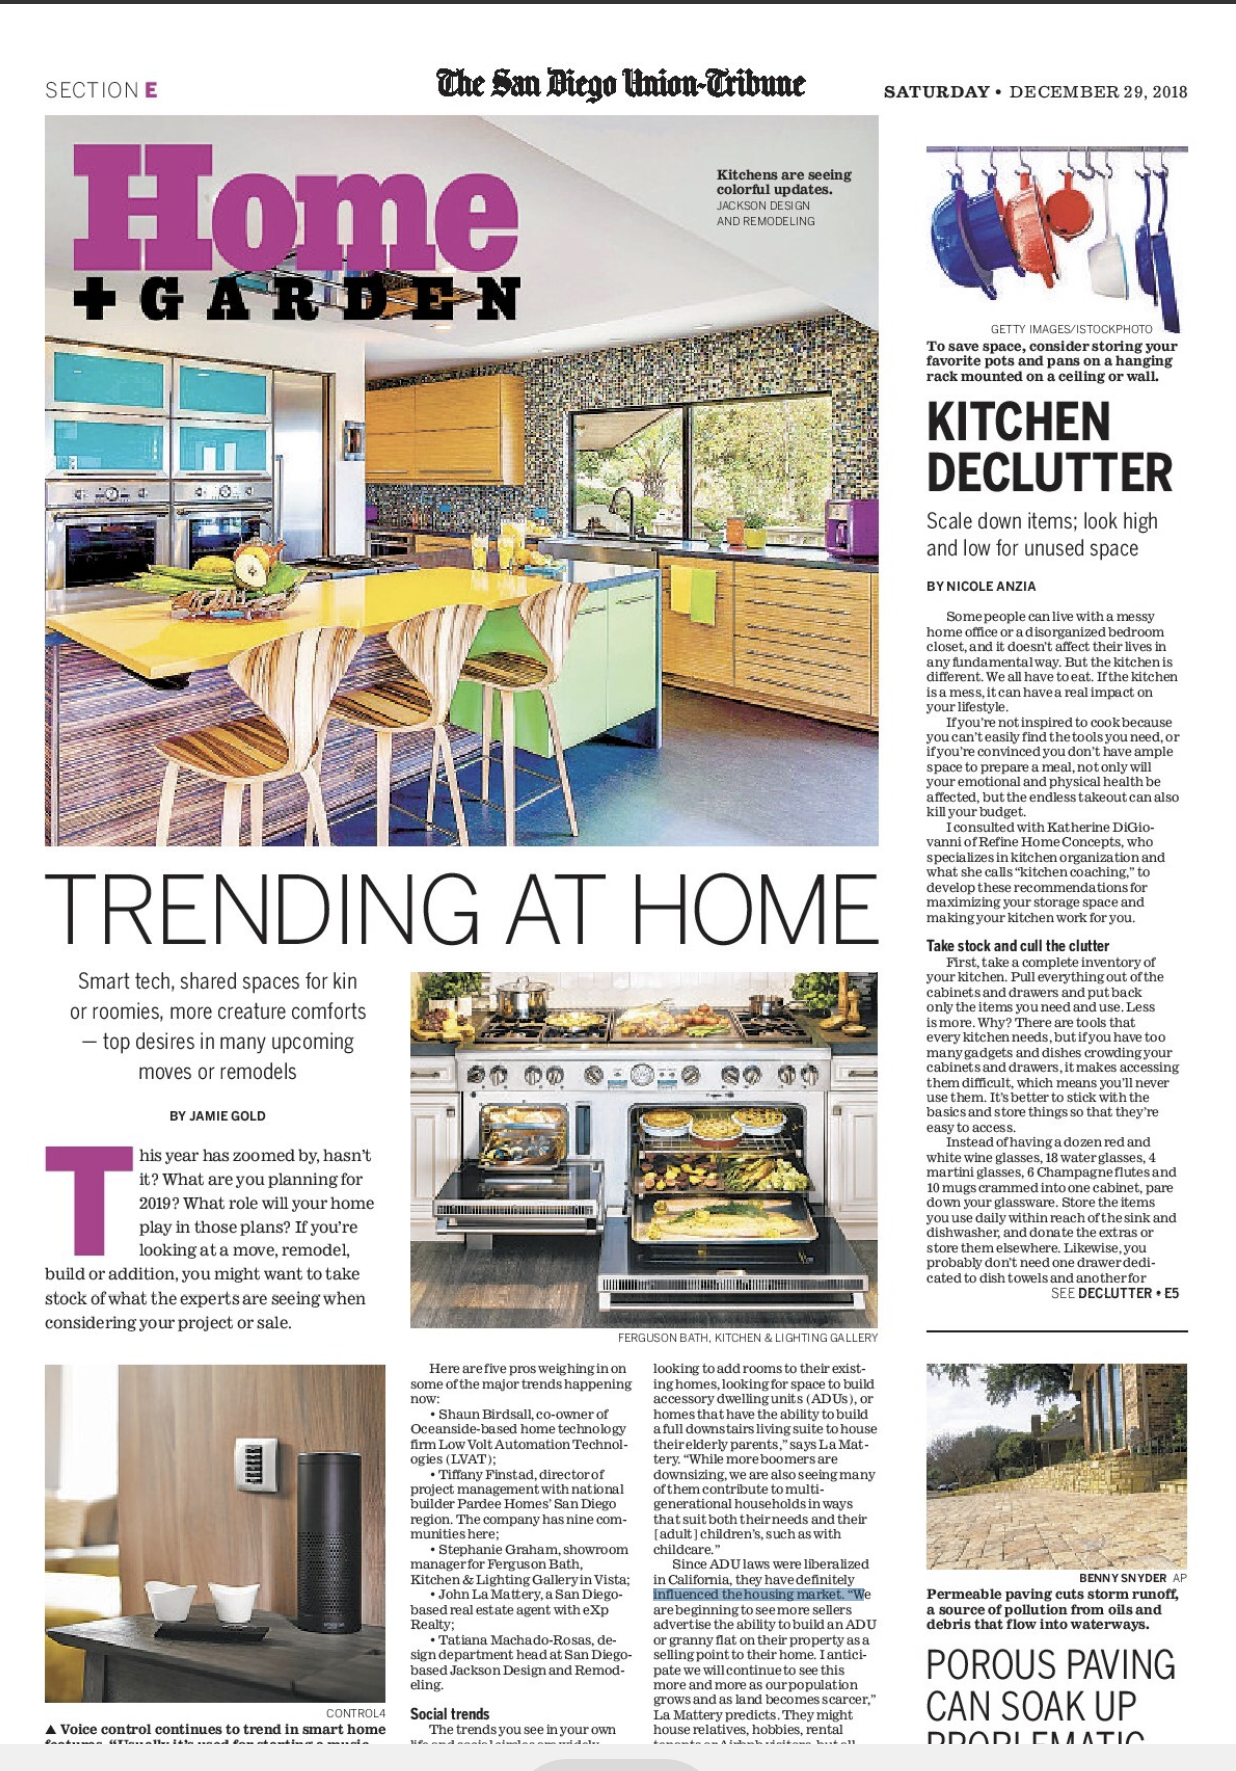 Hot Design Trends for 2019: Client featured in UT story